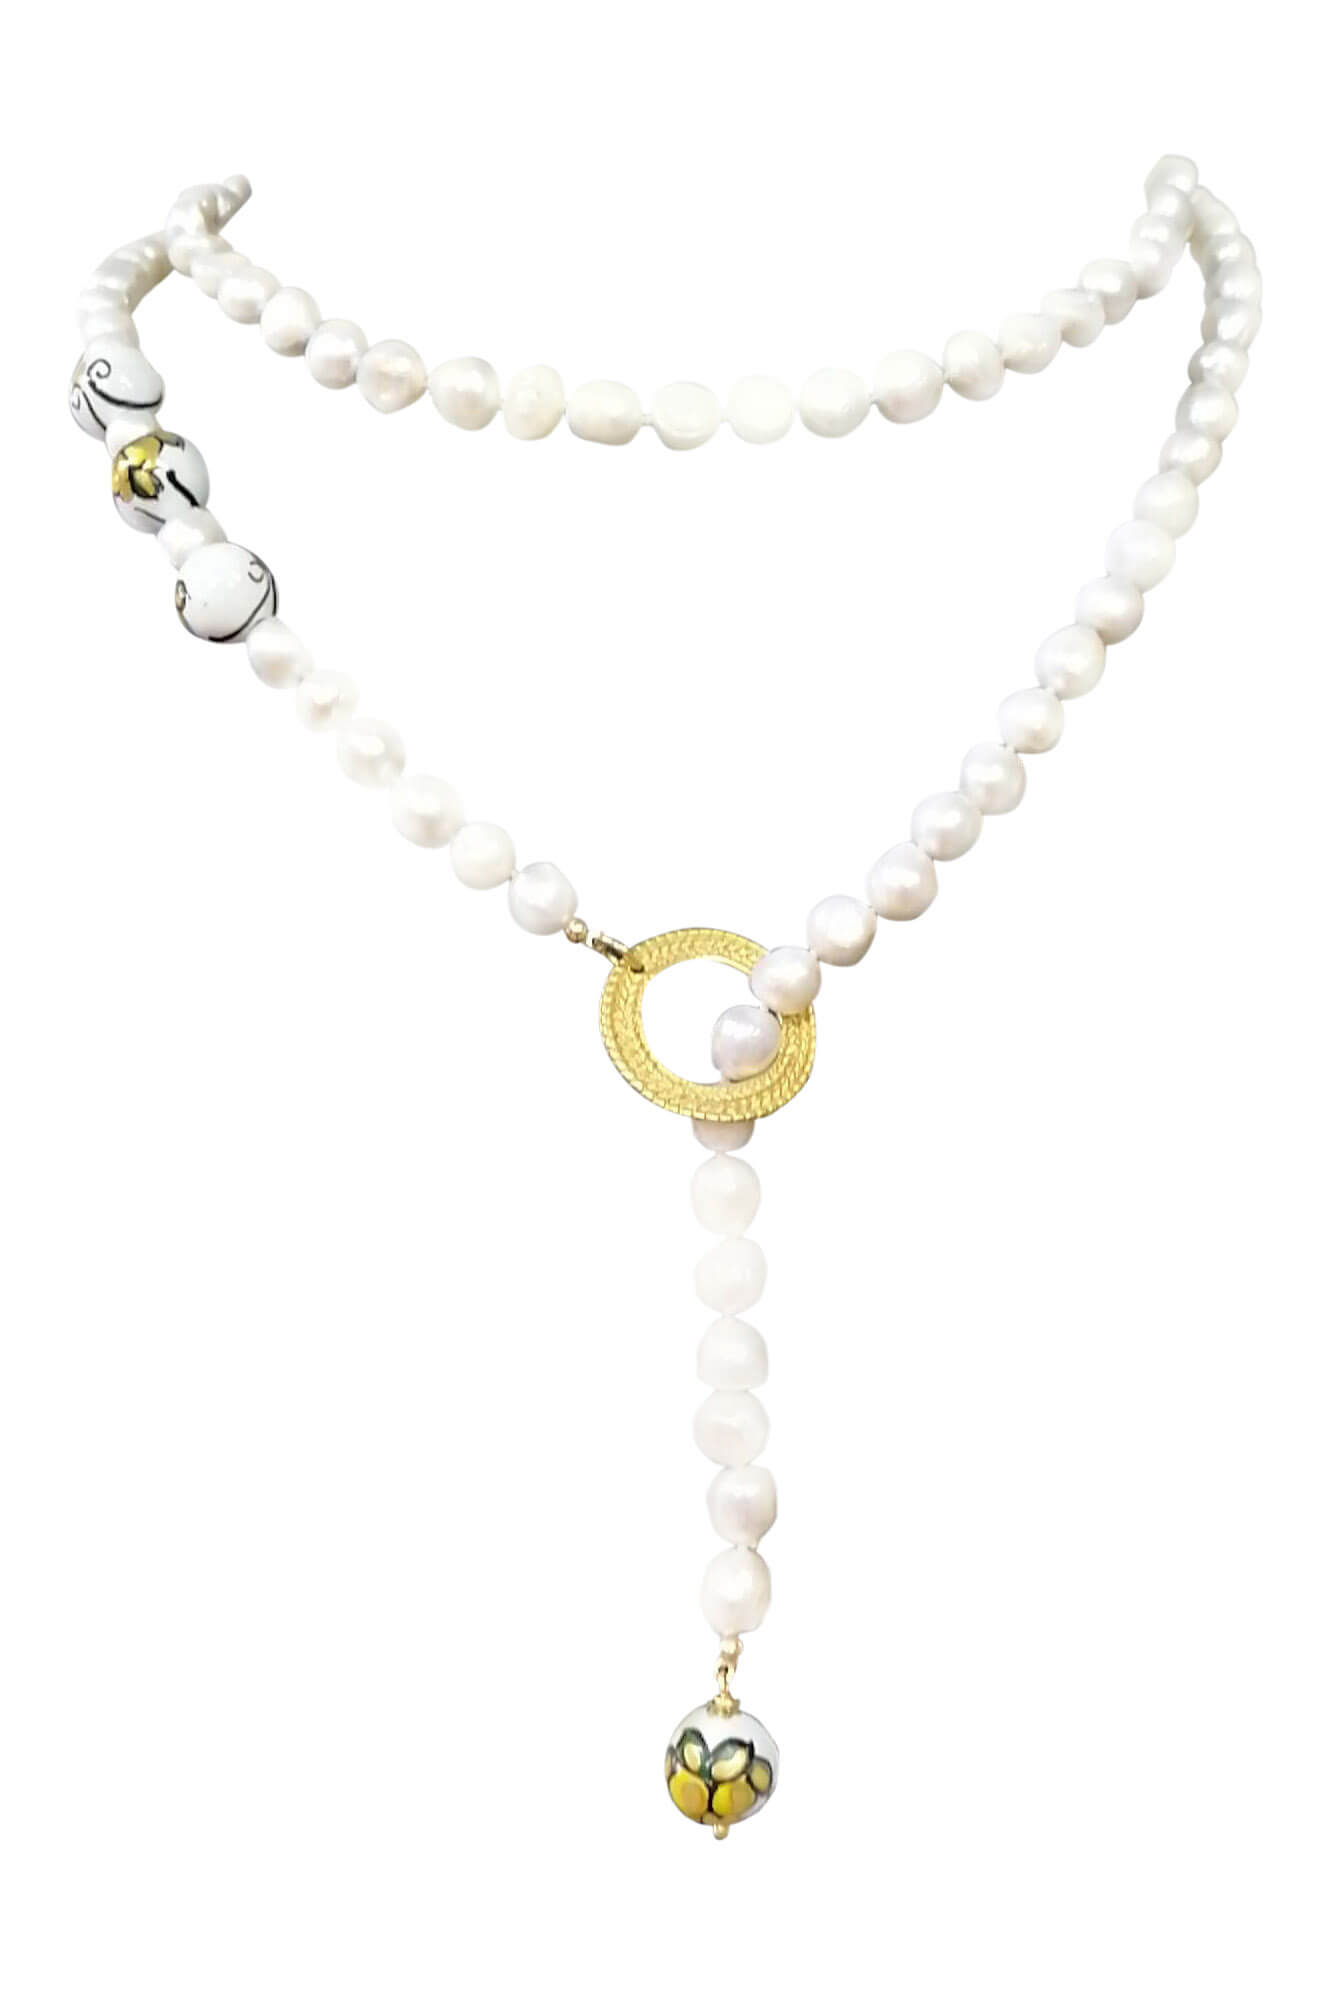 pearl necklace with sweet water pearls and painted ceramics RAPALLO